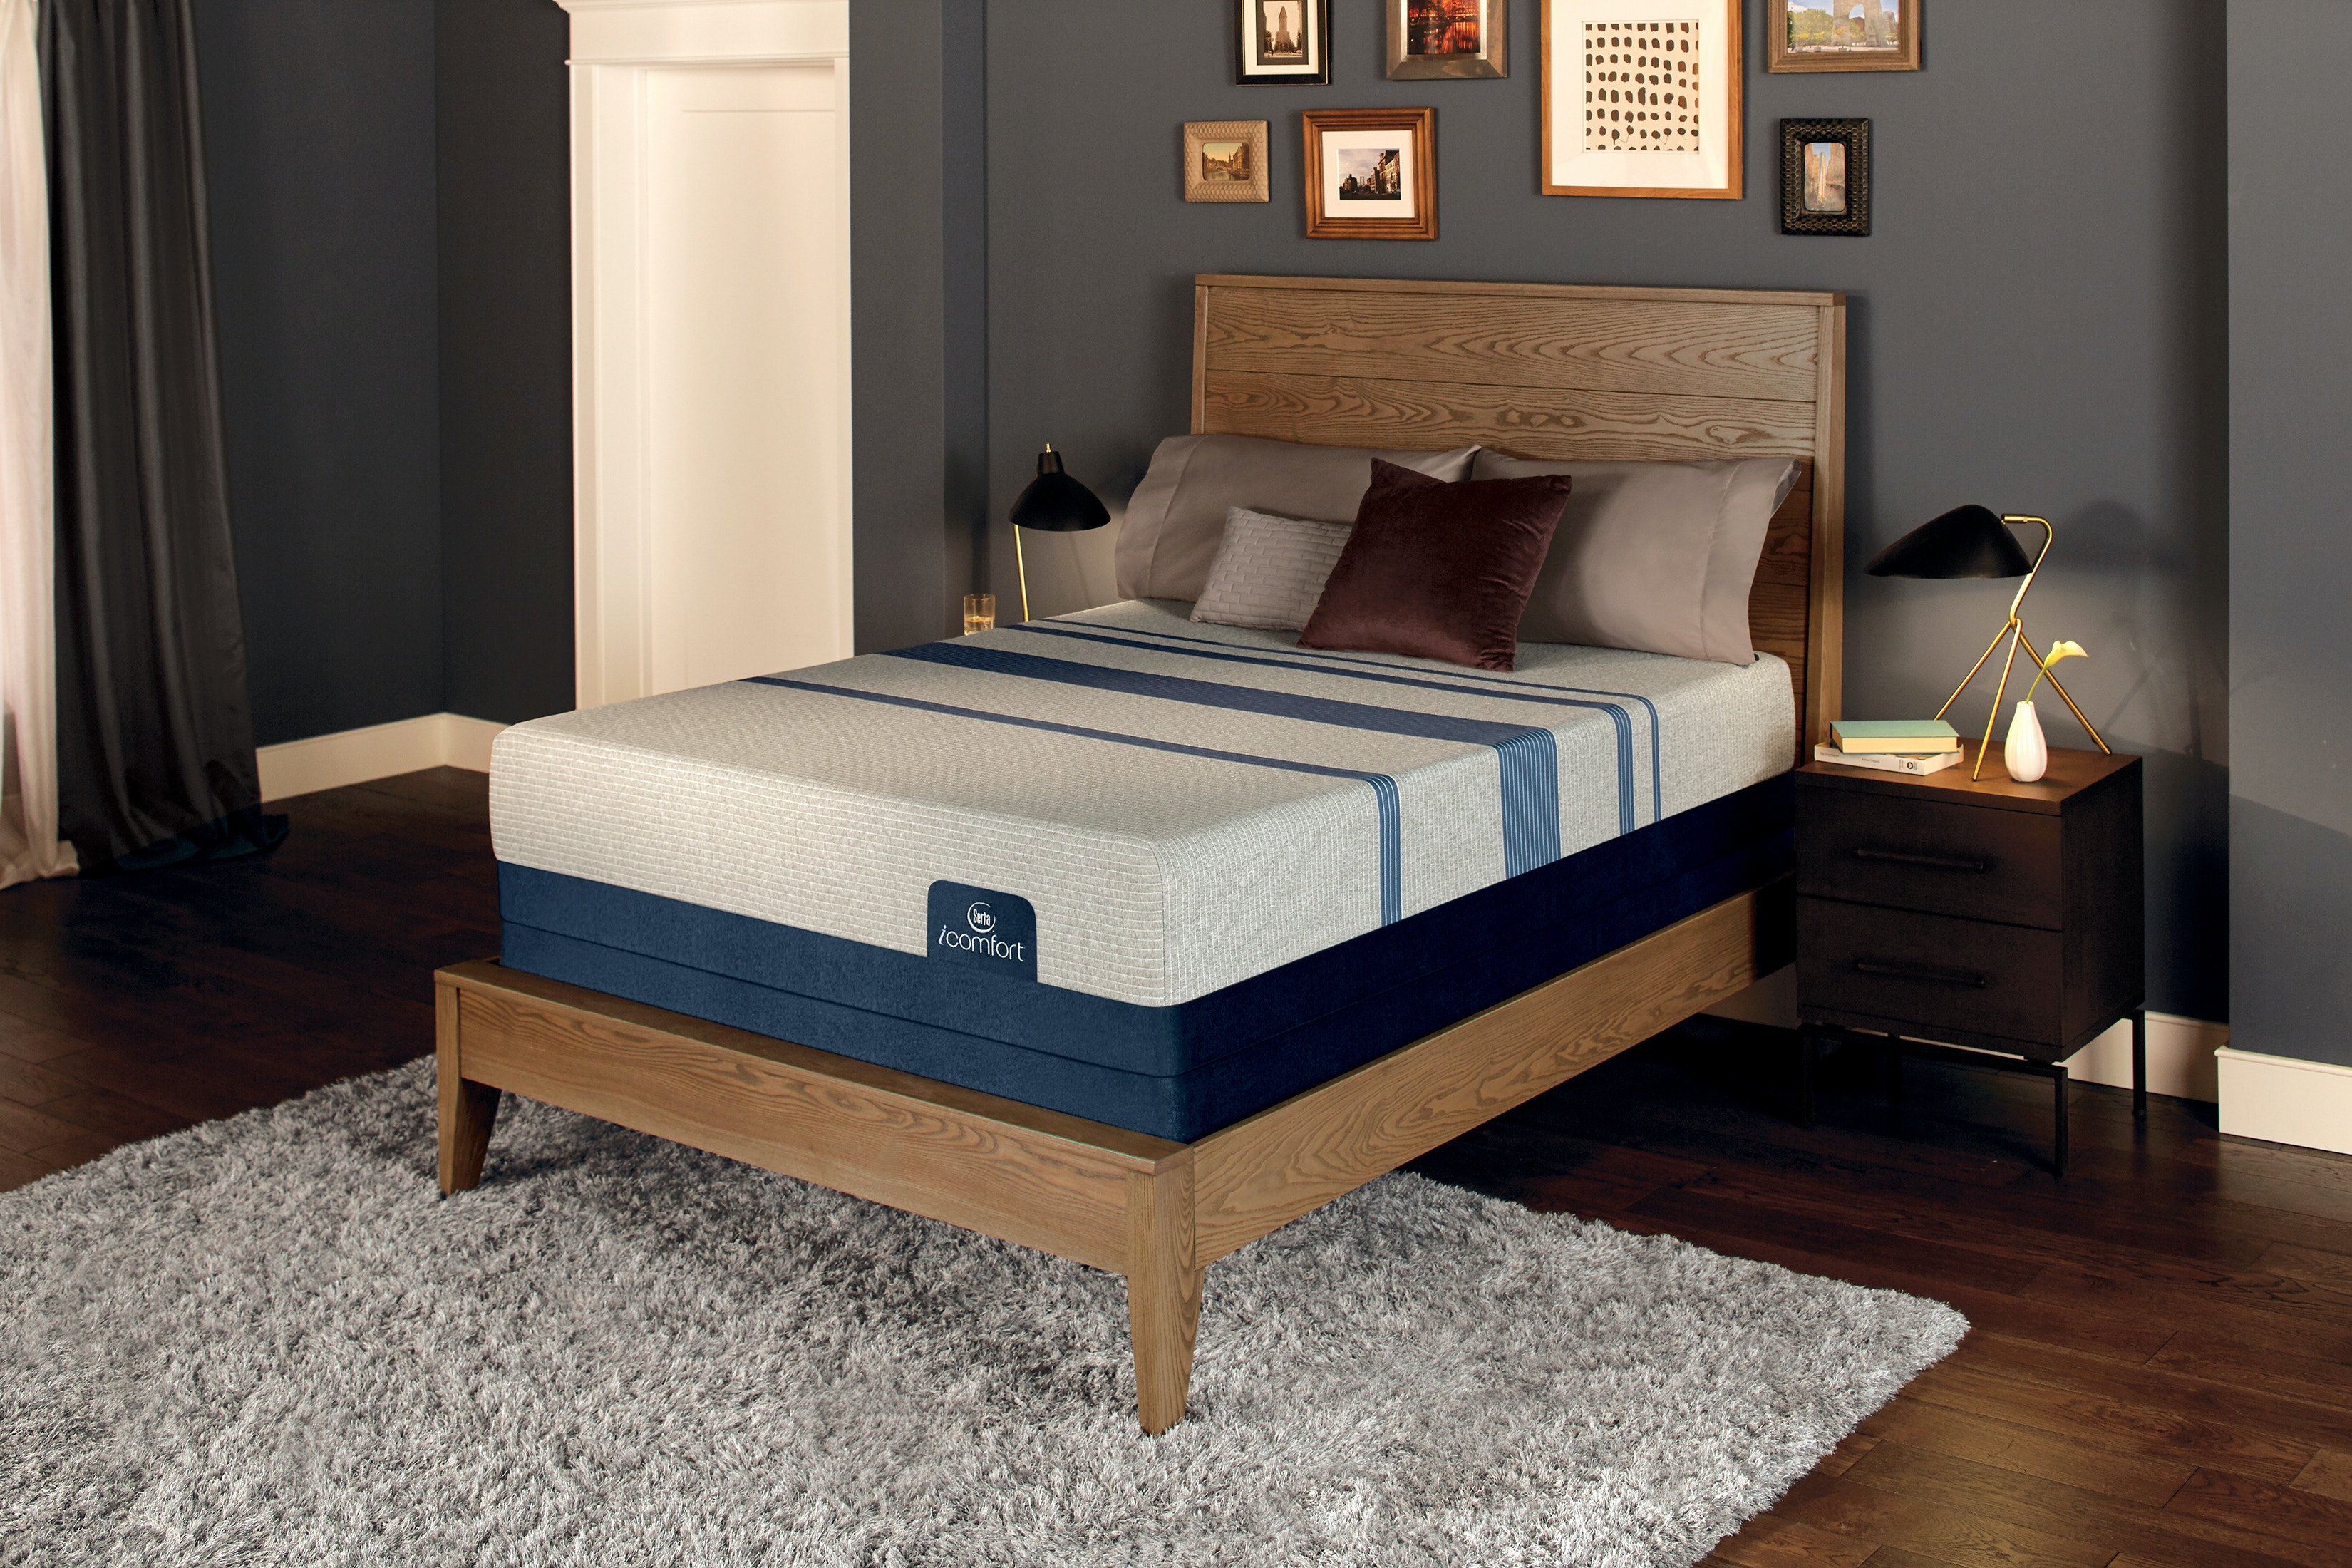 Mattresses Serta Icomfort Blue 1000 Firm Mattress With Motion